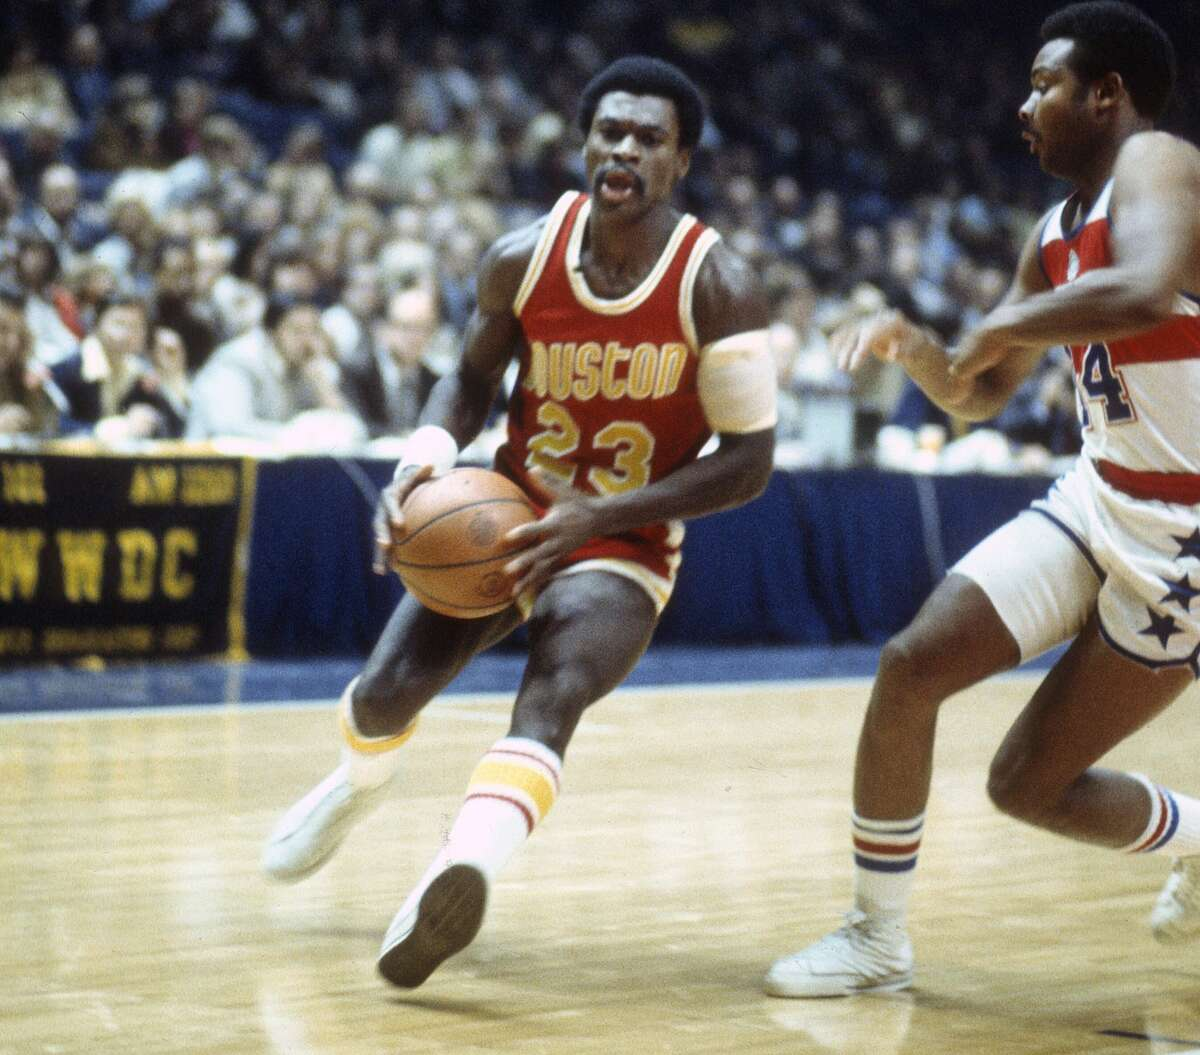 1972-76: New font In their second season in Houston, the Rockets kept the colors on the jerseys the same (yellow letters and numerals) but changed the font with the now-familiar slanted team name across the top instead of the name being curved around the jersey number.